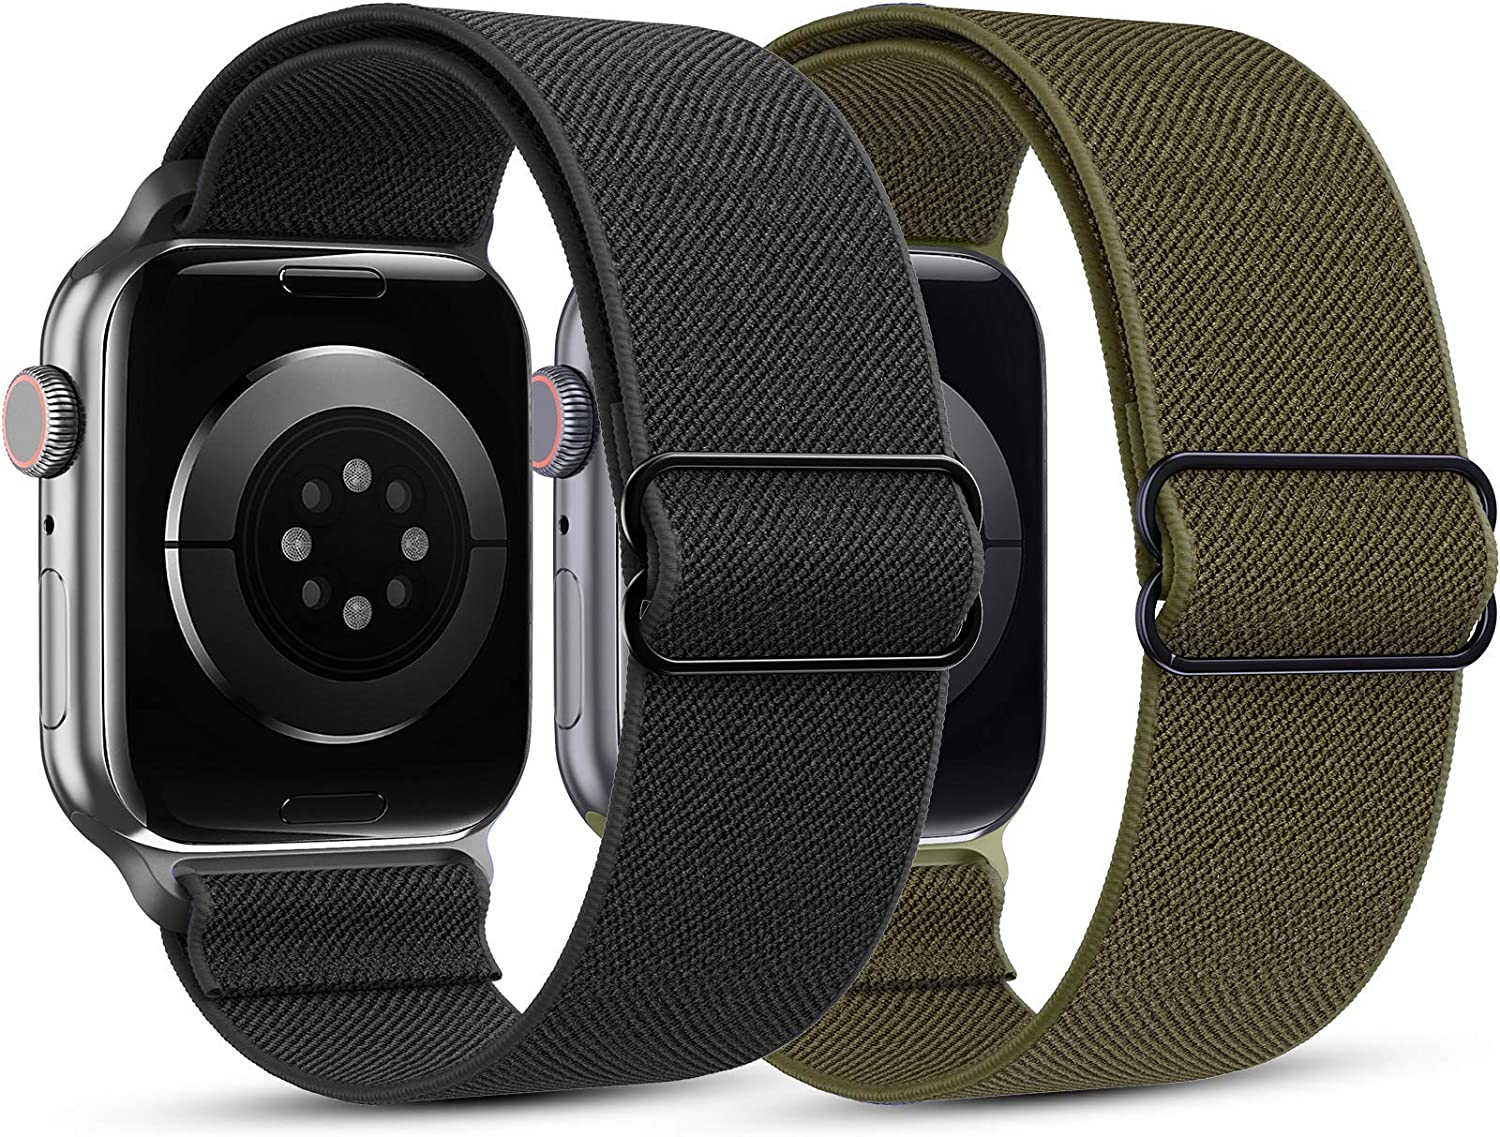 HAPAW [2 Pack] Elastic Nylon Bands Compatible with Apple Watch Bands 42mm 44mm, Soft Adjustable Stretchy Solo Loop Breathable Strap Replacement Wristband Women Men for iWatch SE Series 6/5/4/3/2/1